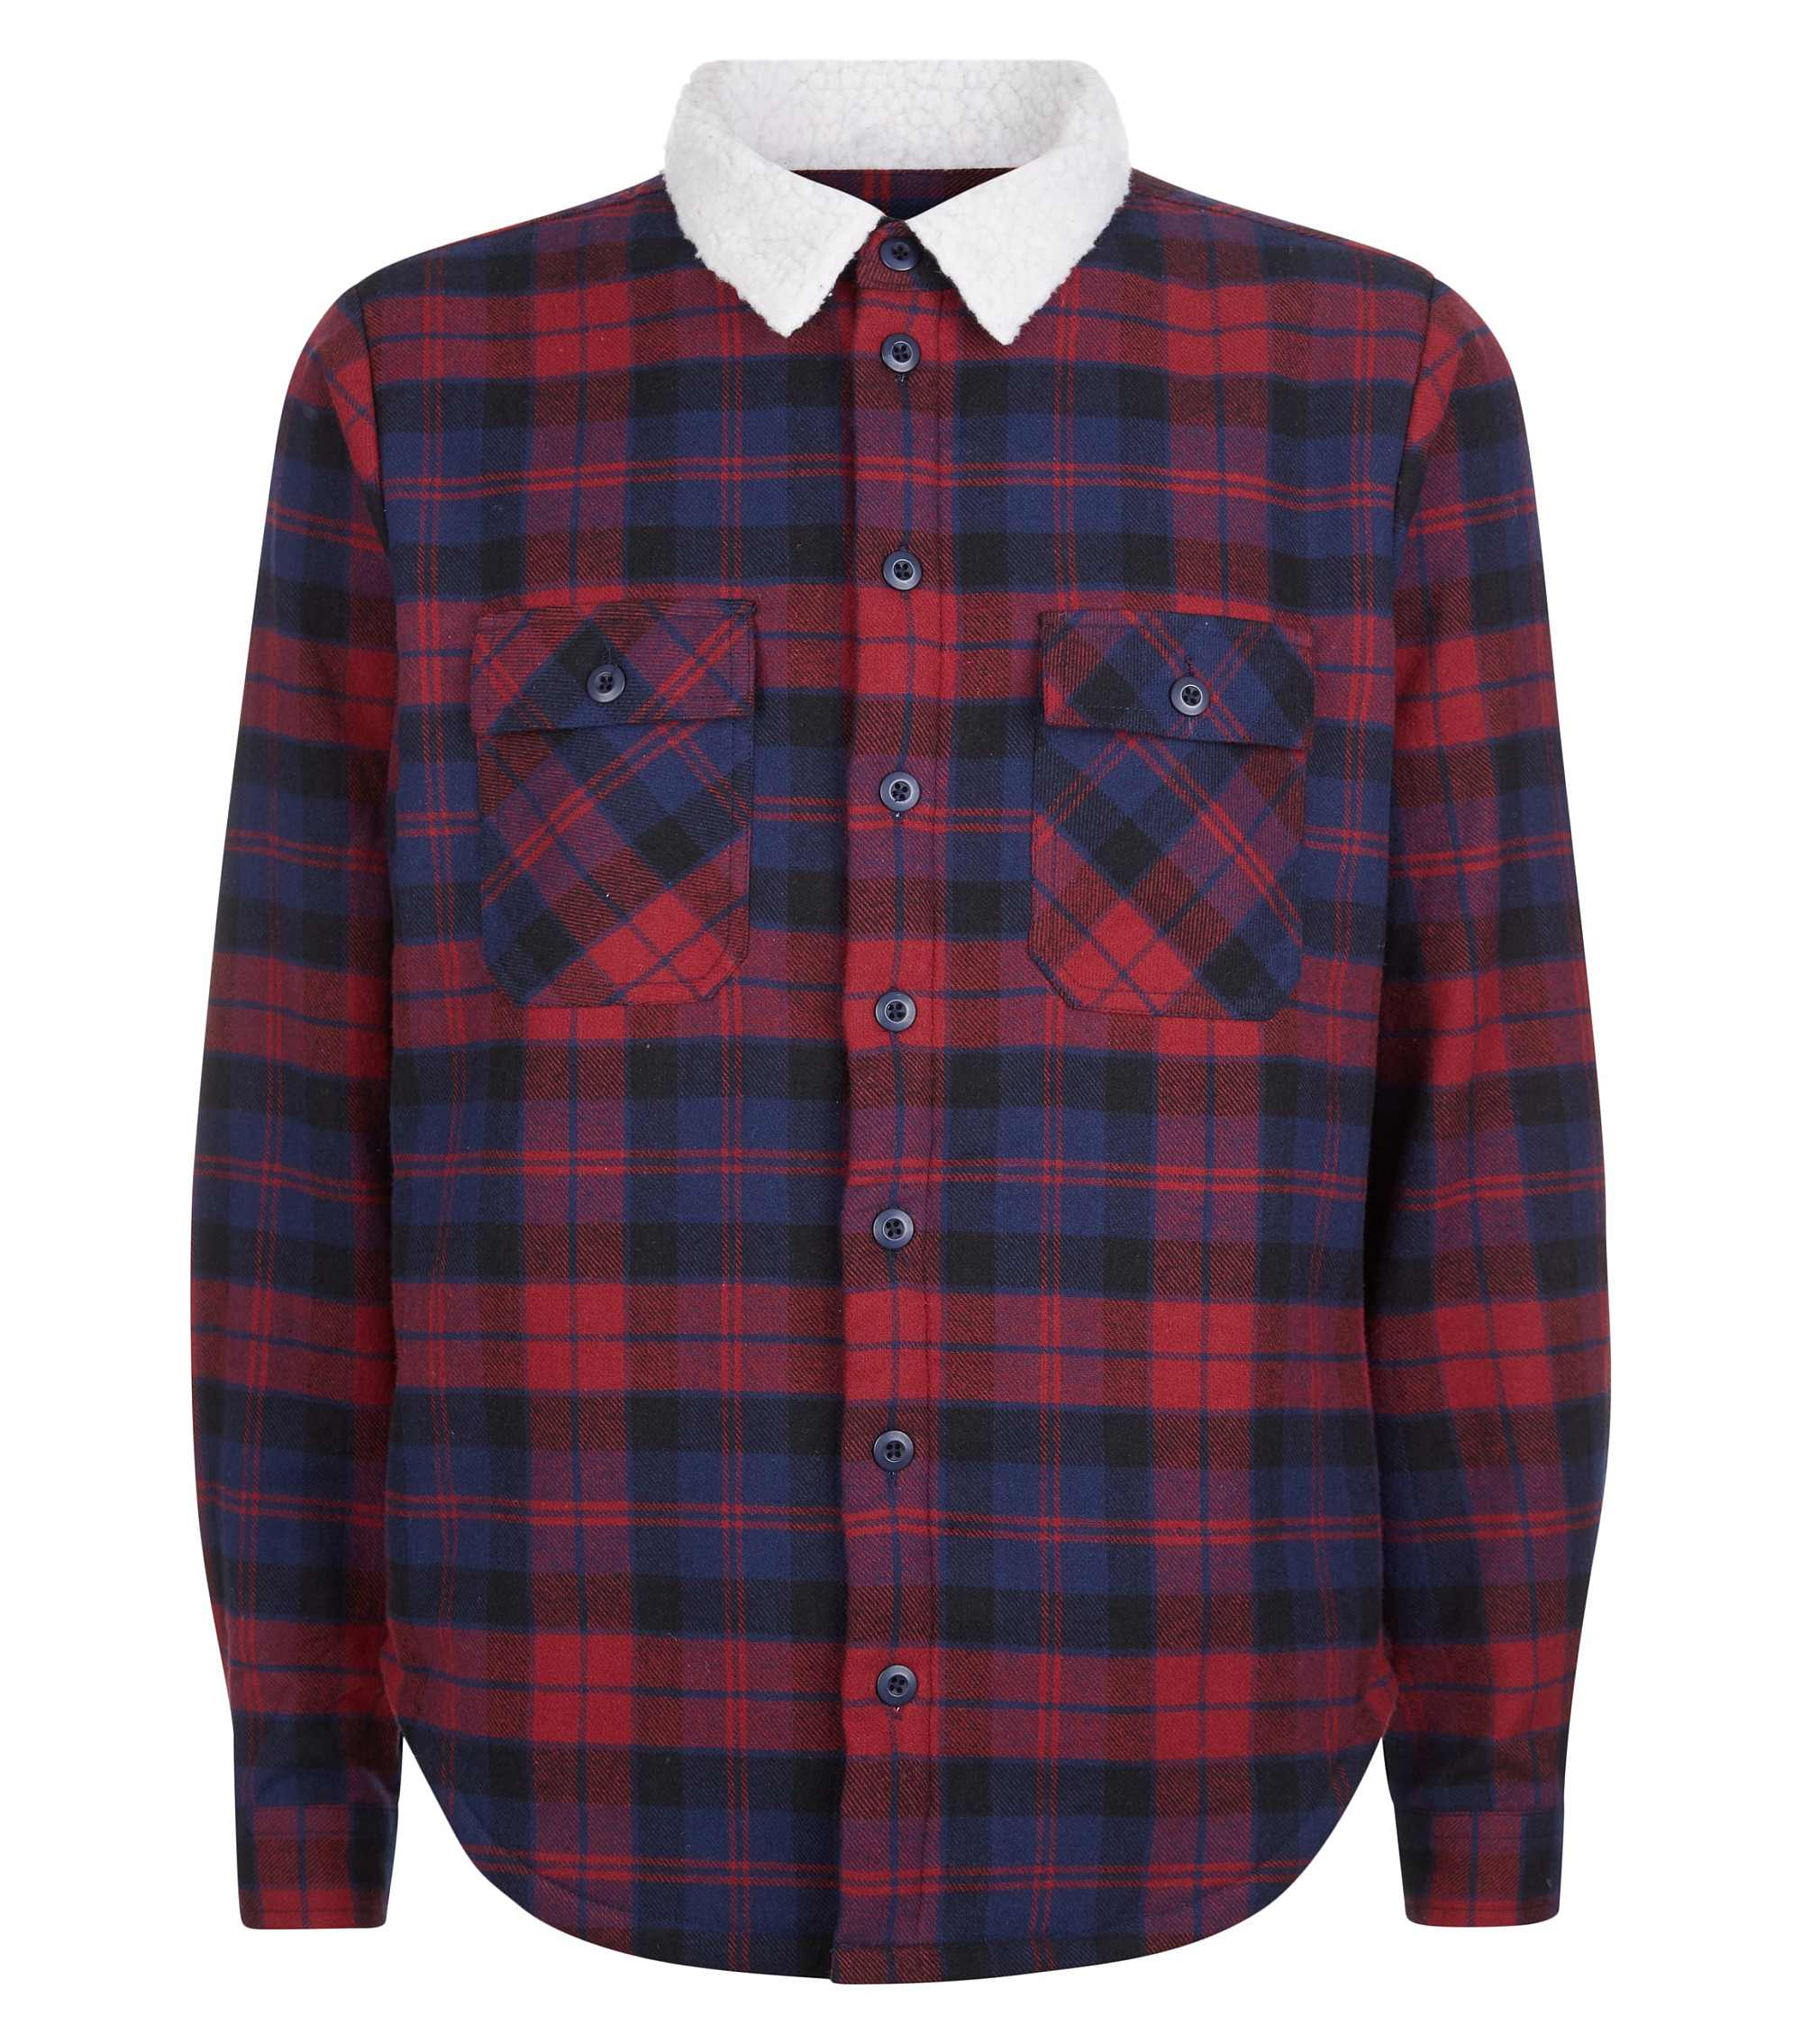 New Look Men's Red Check Shirt with Borg Collar